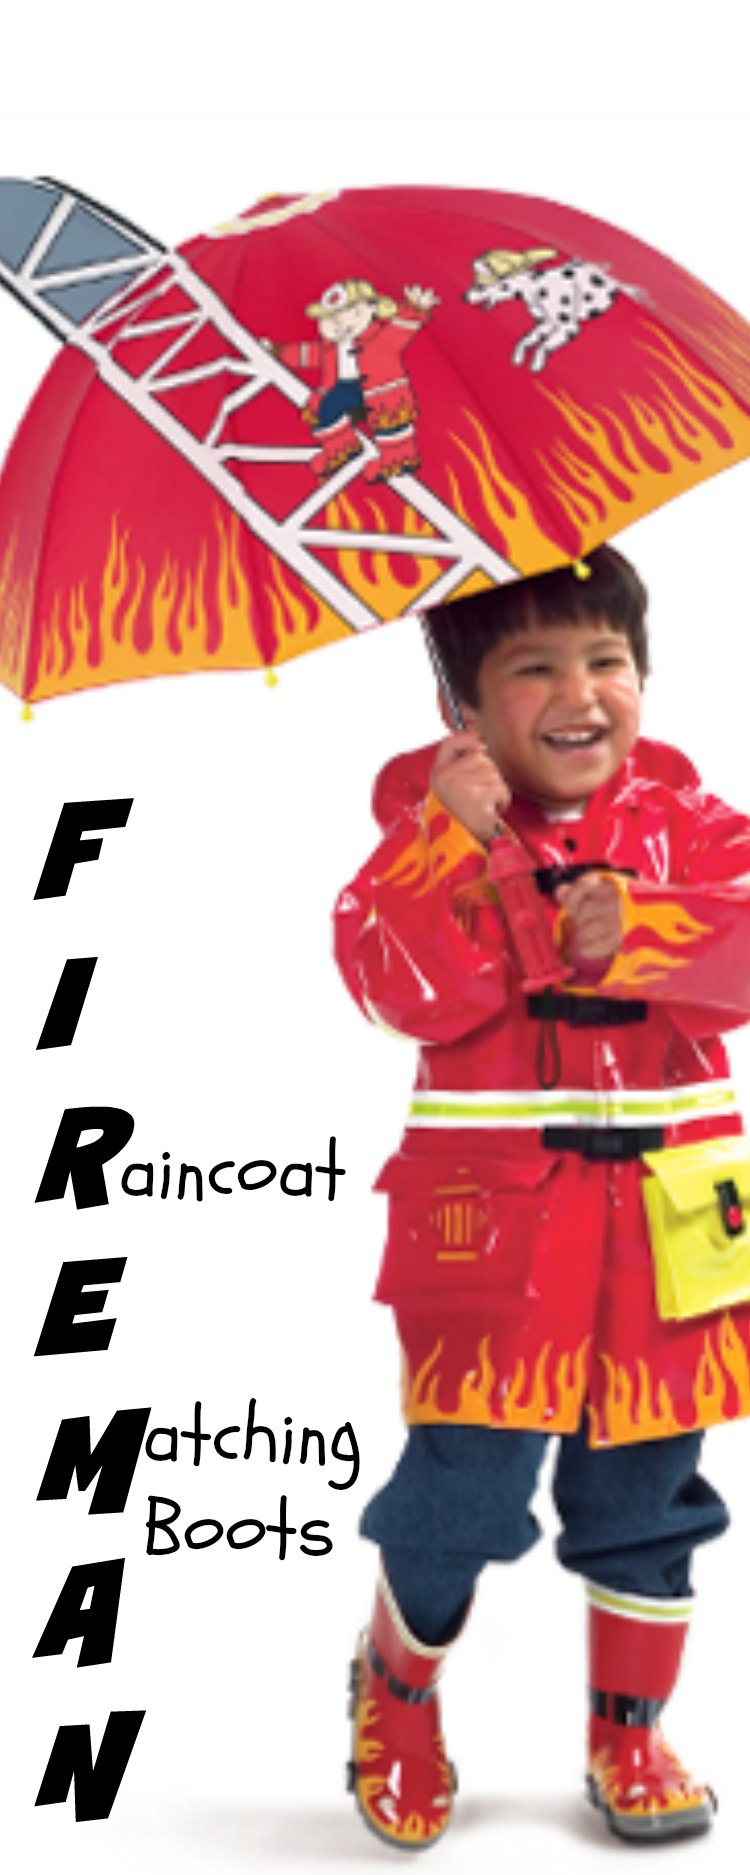 Fireman Children Raincoats with Matching Boots